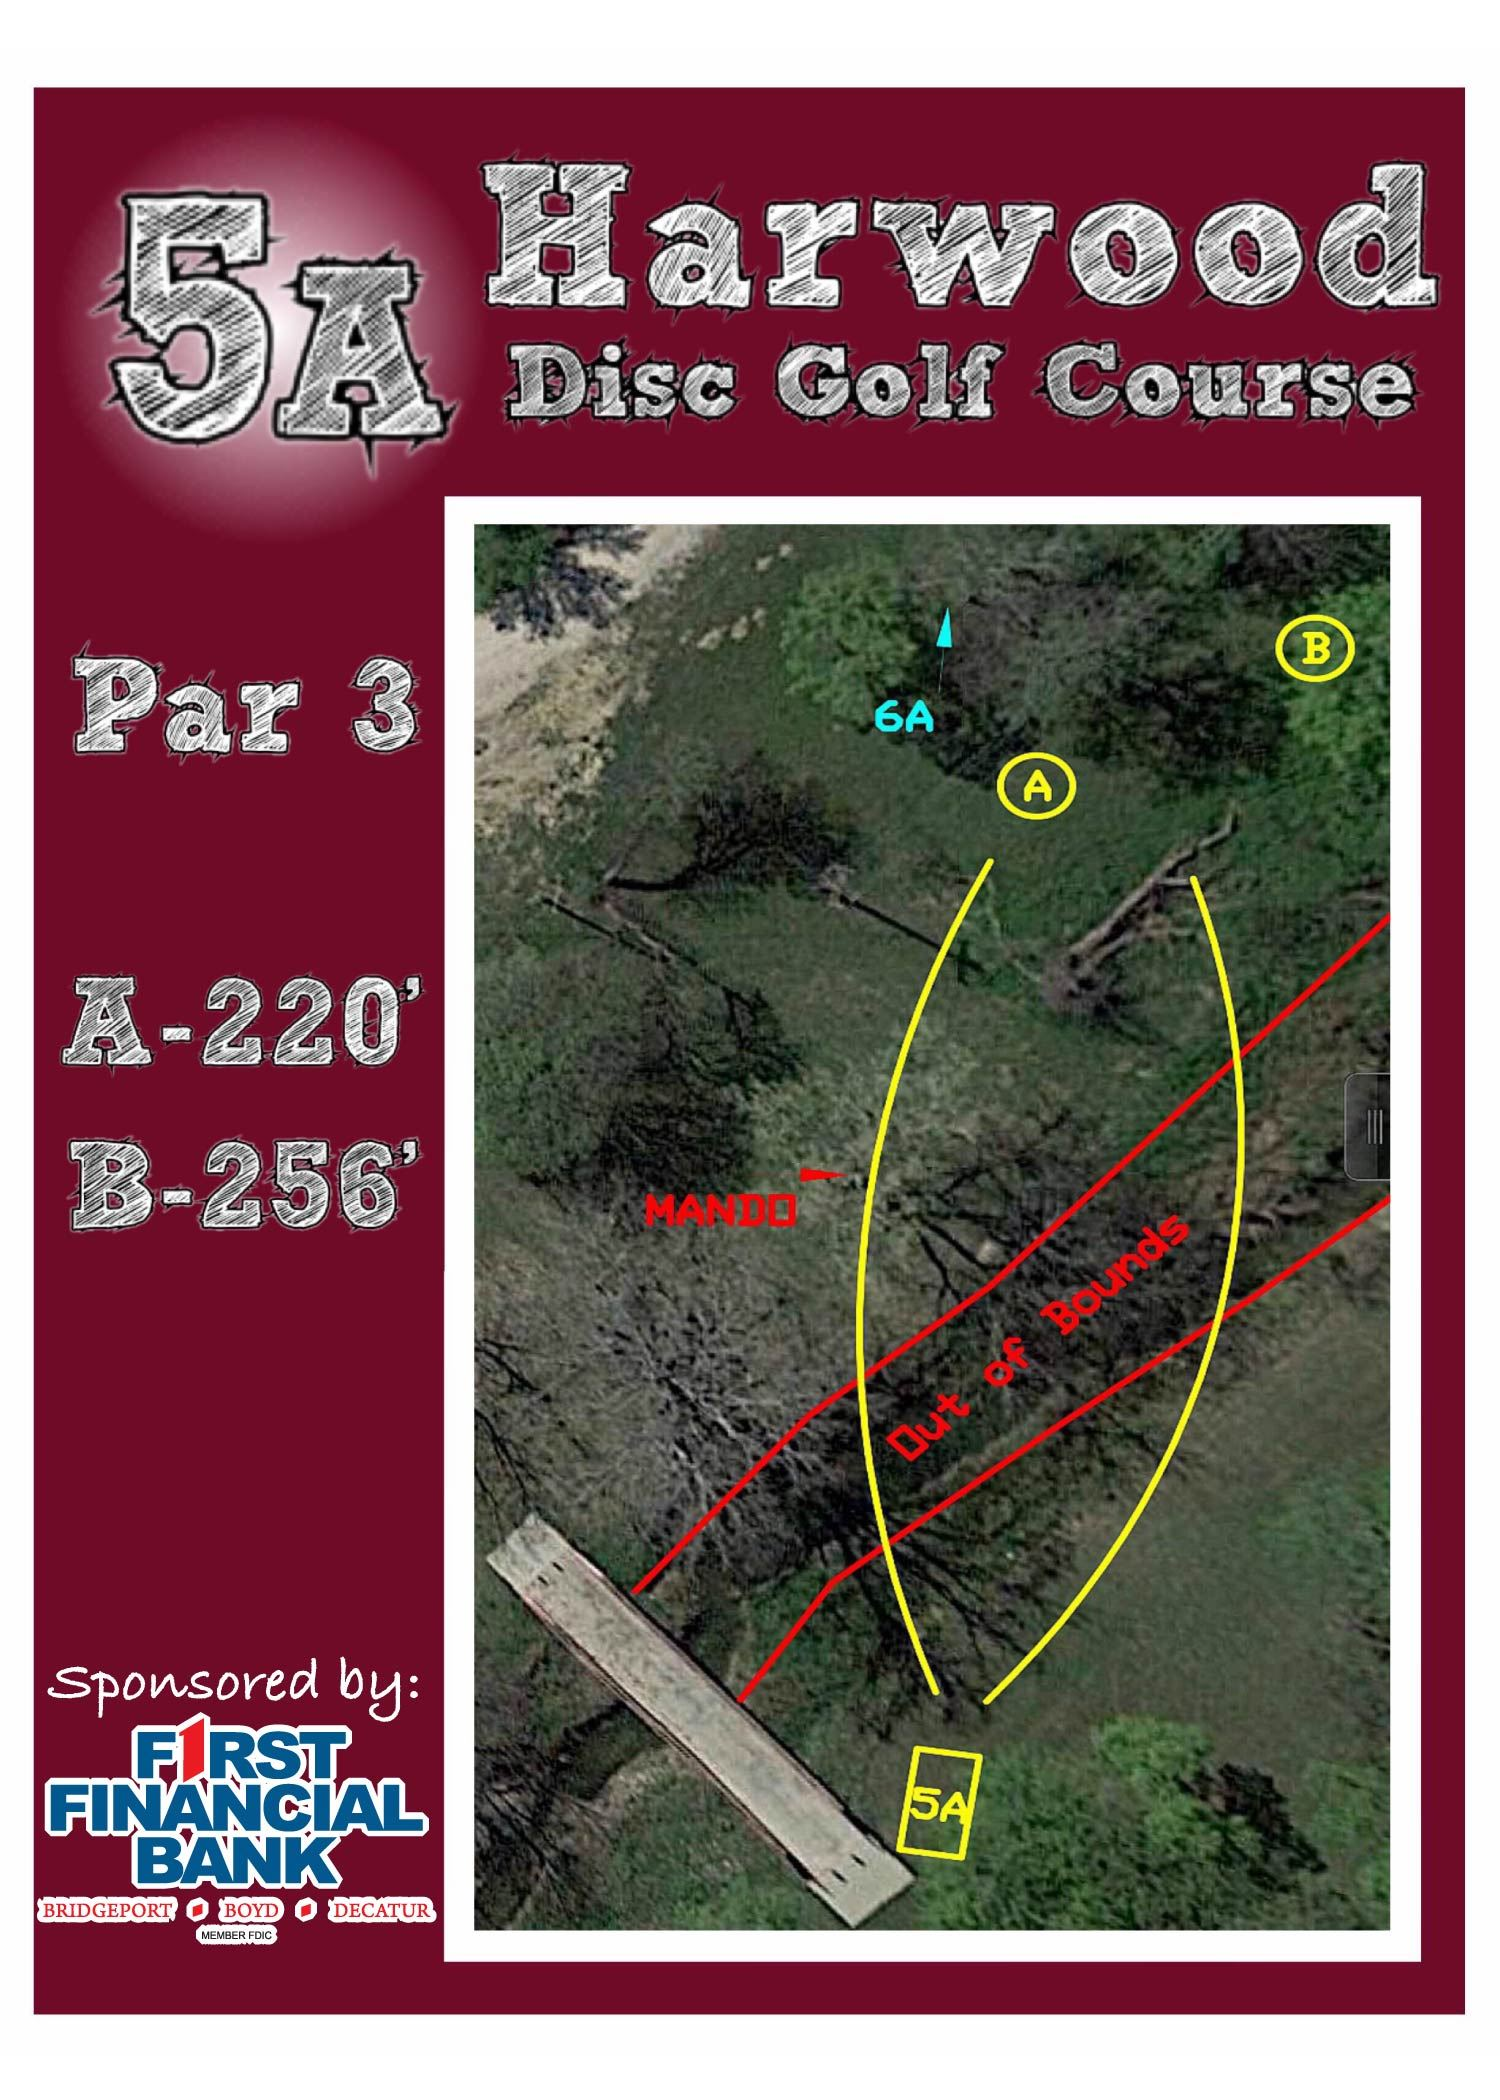 SV-BridgeportParksRec-FrisbeeGolf-Hole5-FirstFinancial-October2015-01